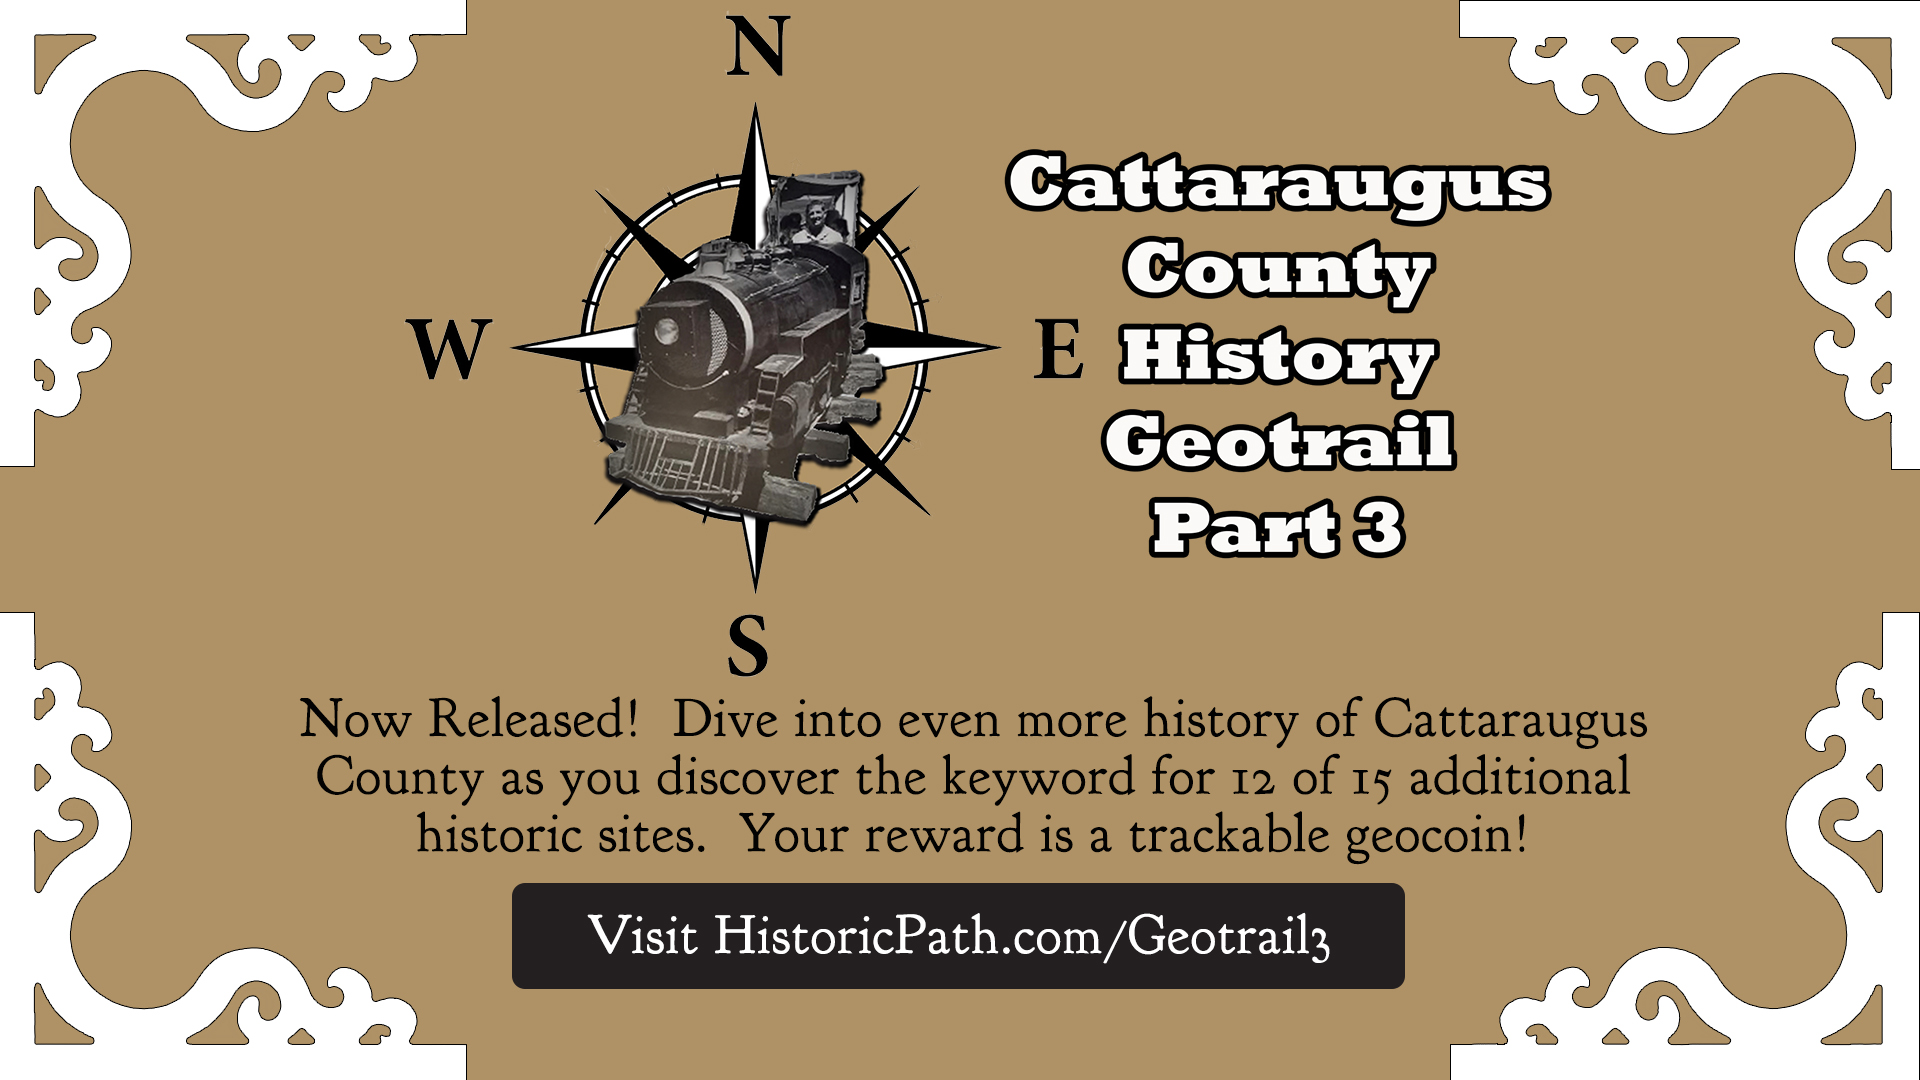 Cattaraugus County History Geotrail Part 3